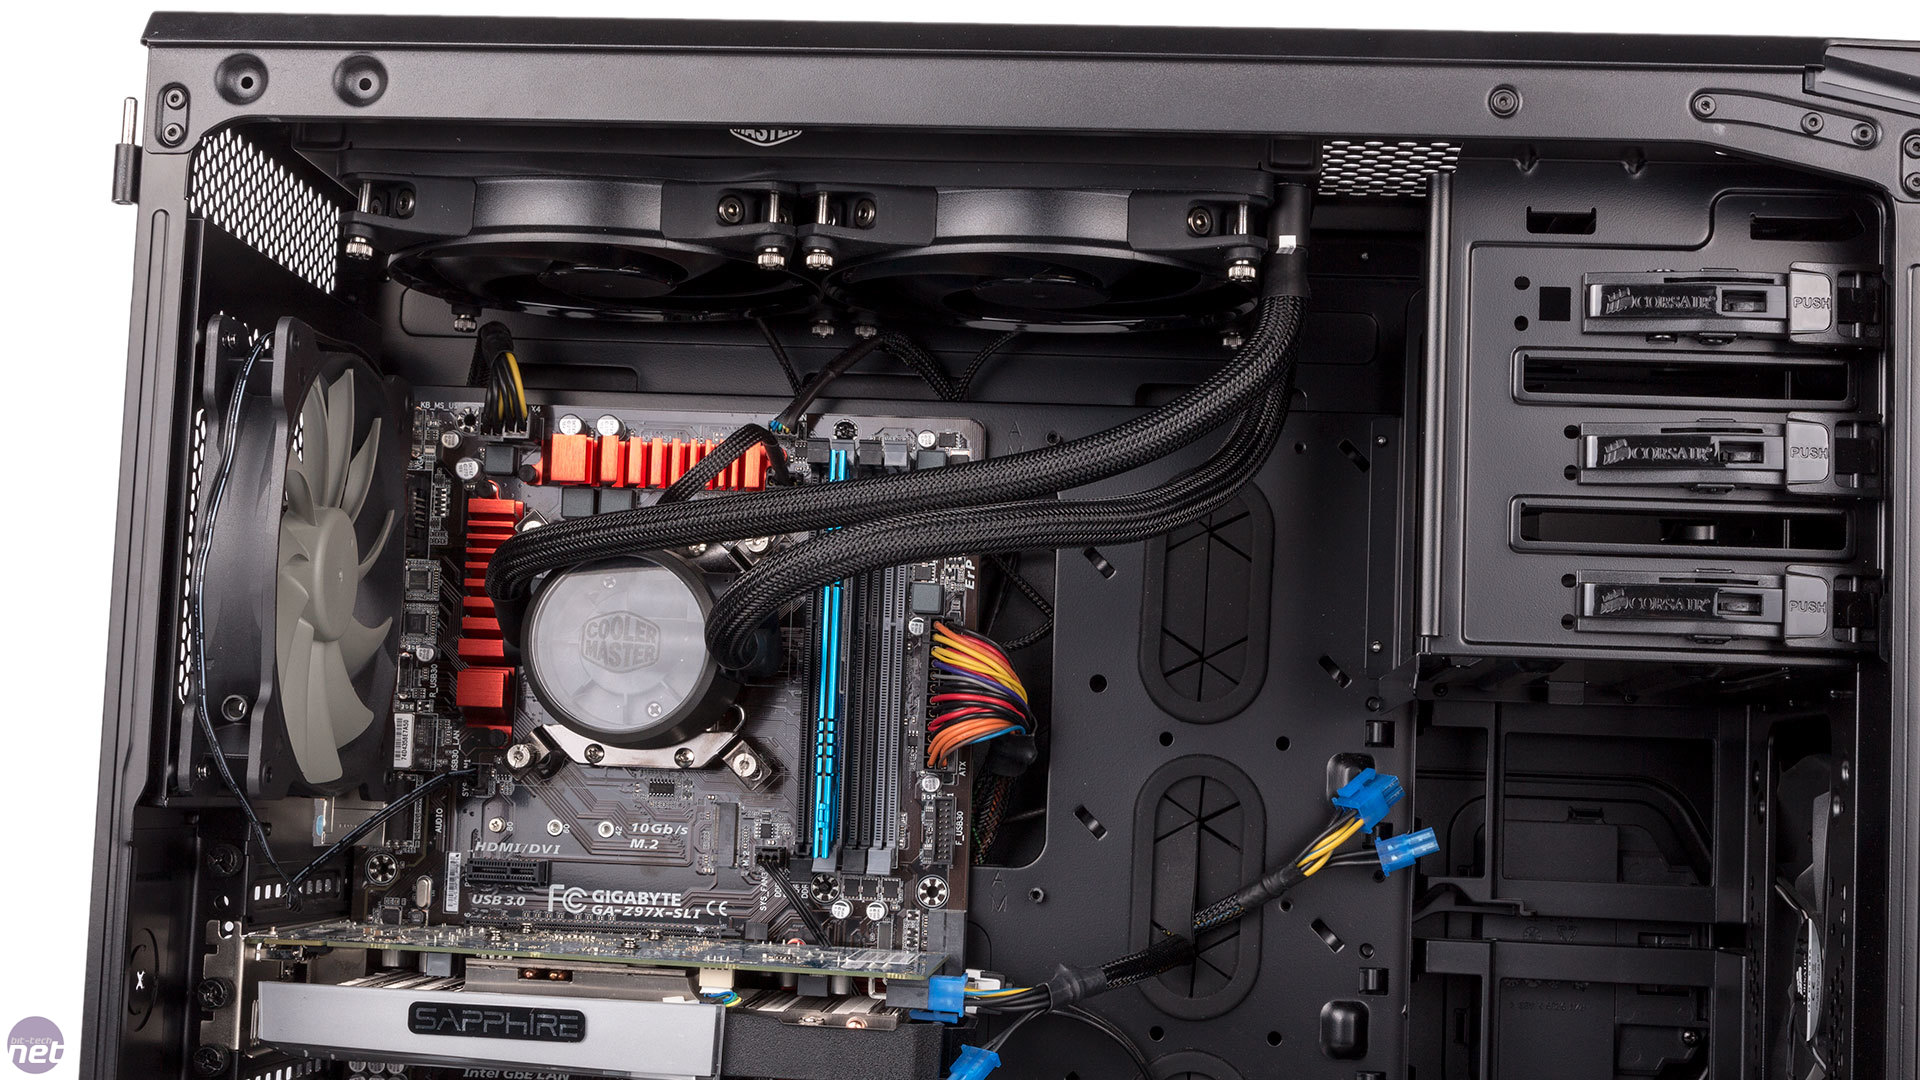 Cooler Master Masterliquid Pro 280 Review